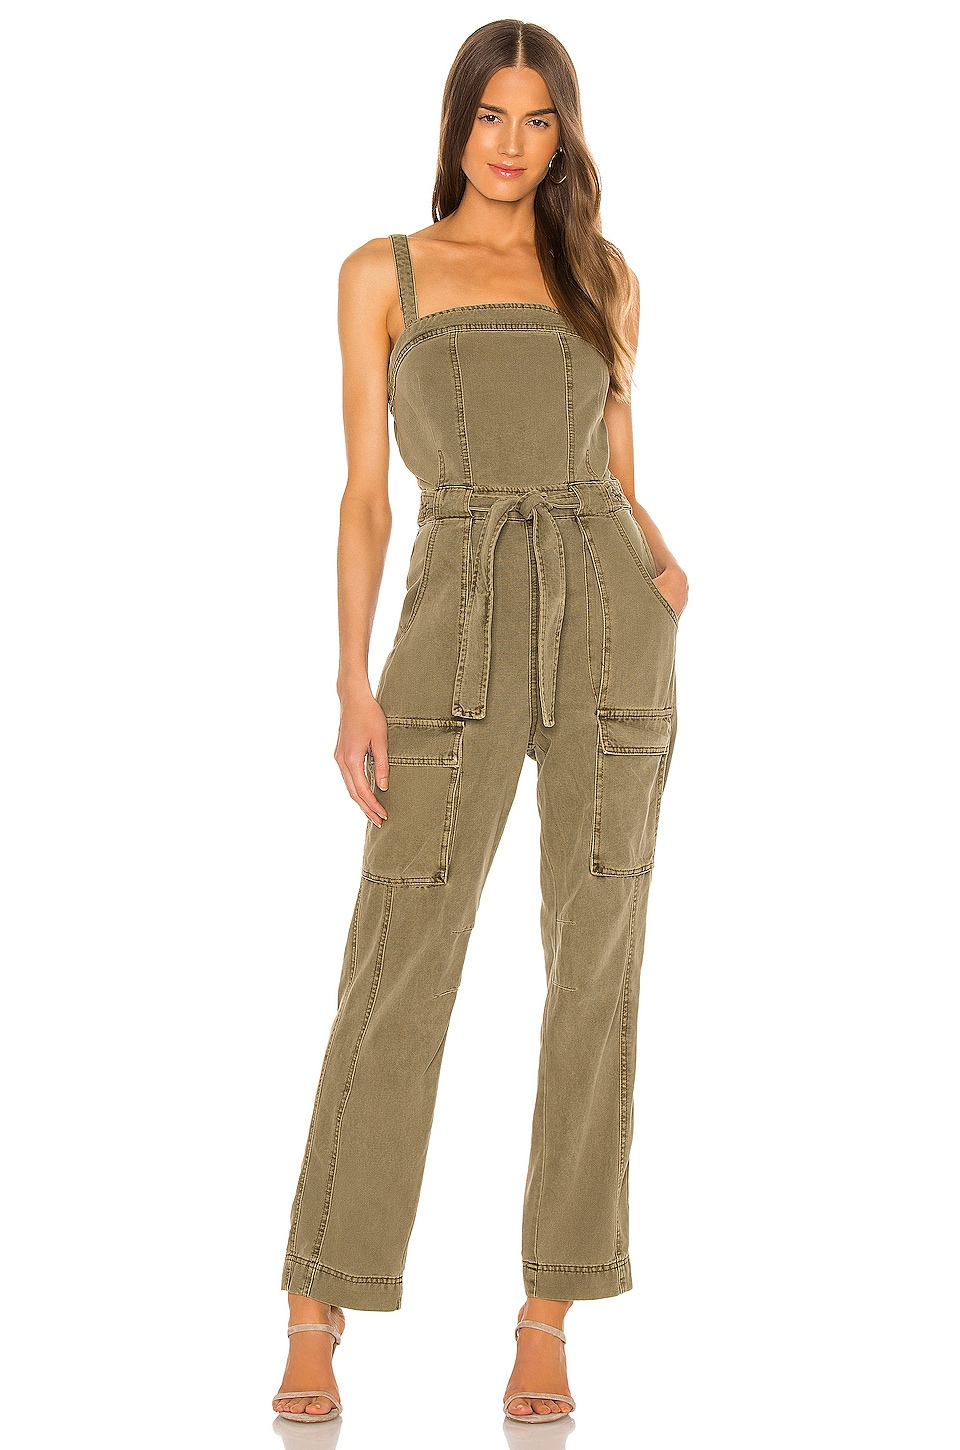 Free People Go West Utility Jumpsuit in Moss